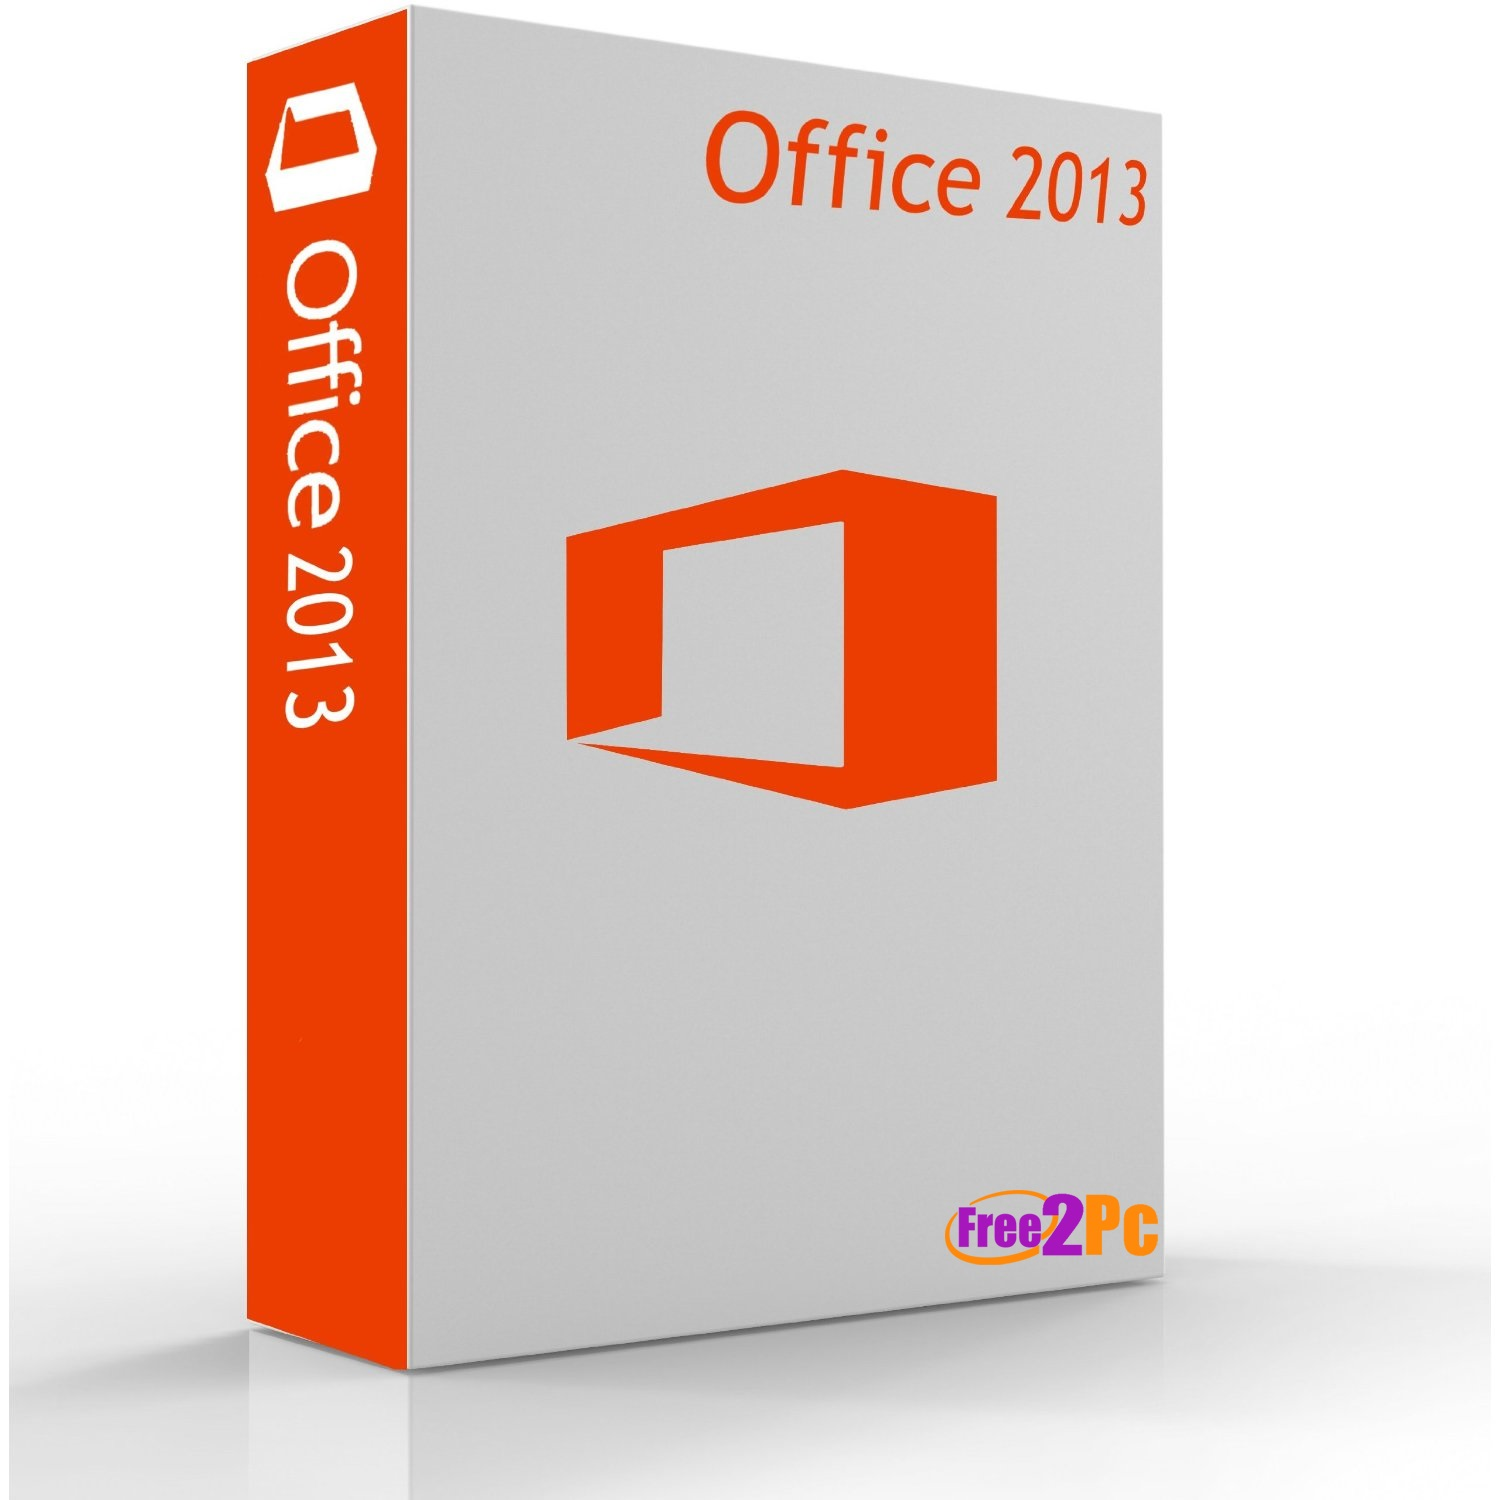 Microsoft Office 2013 Product Key With Crack Plus Keygen Number Download